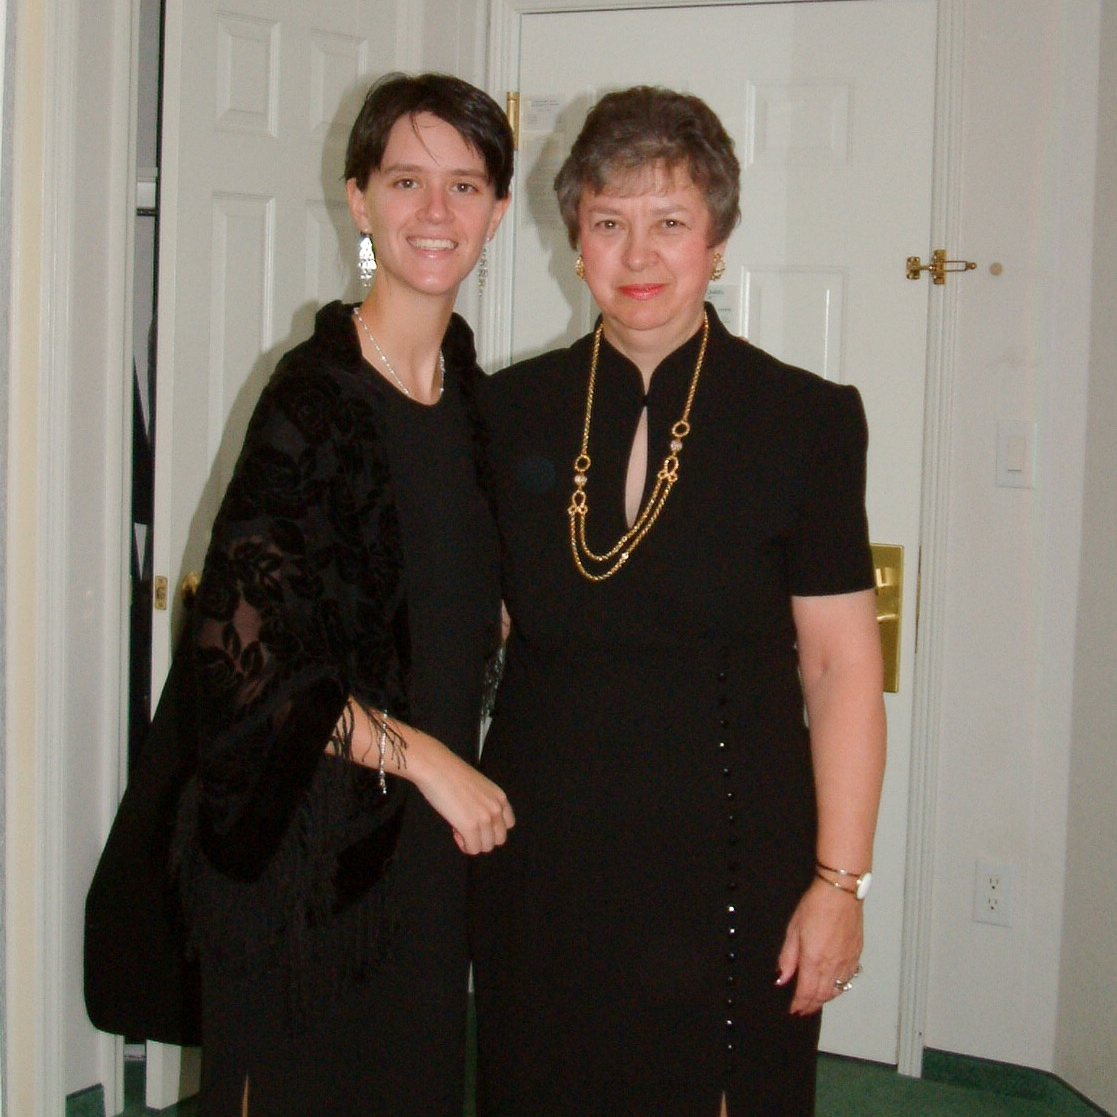 This is one of about five pictures I could find of me with my Mom...yes I'm wearing a dress and fishing lure earrings.